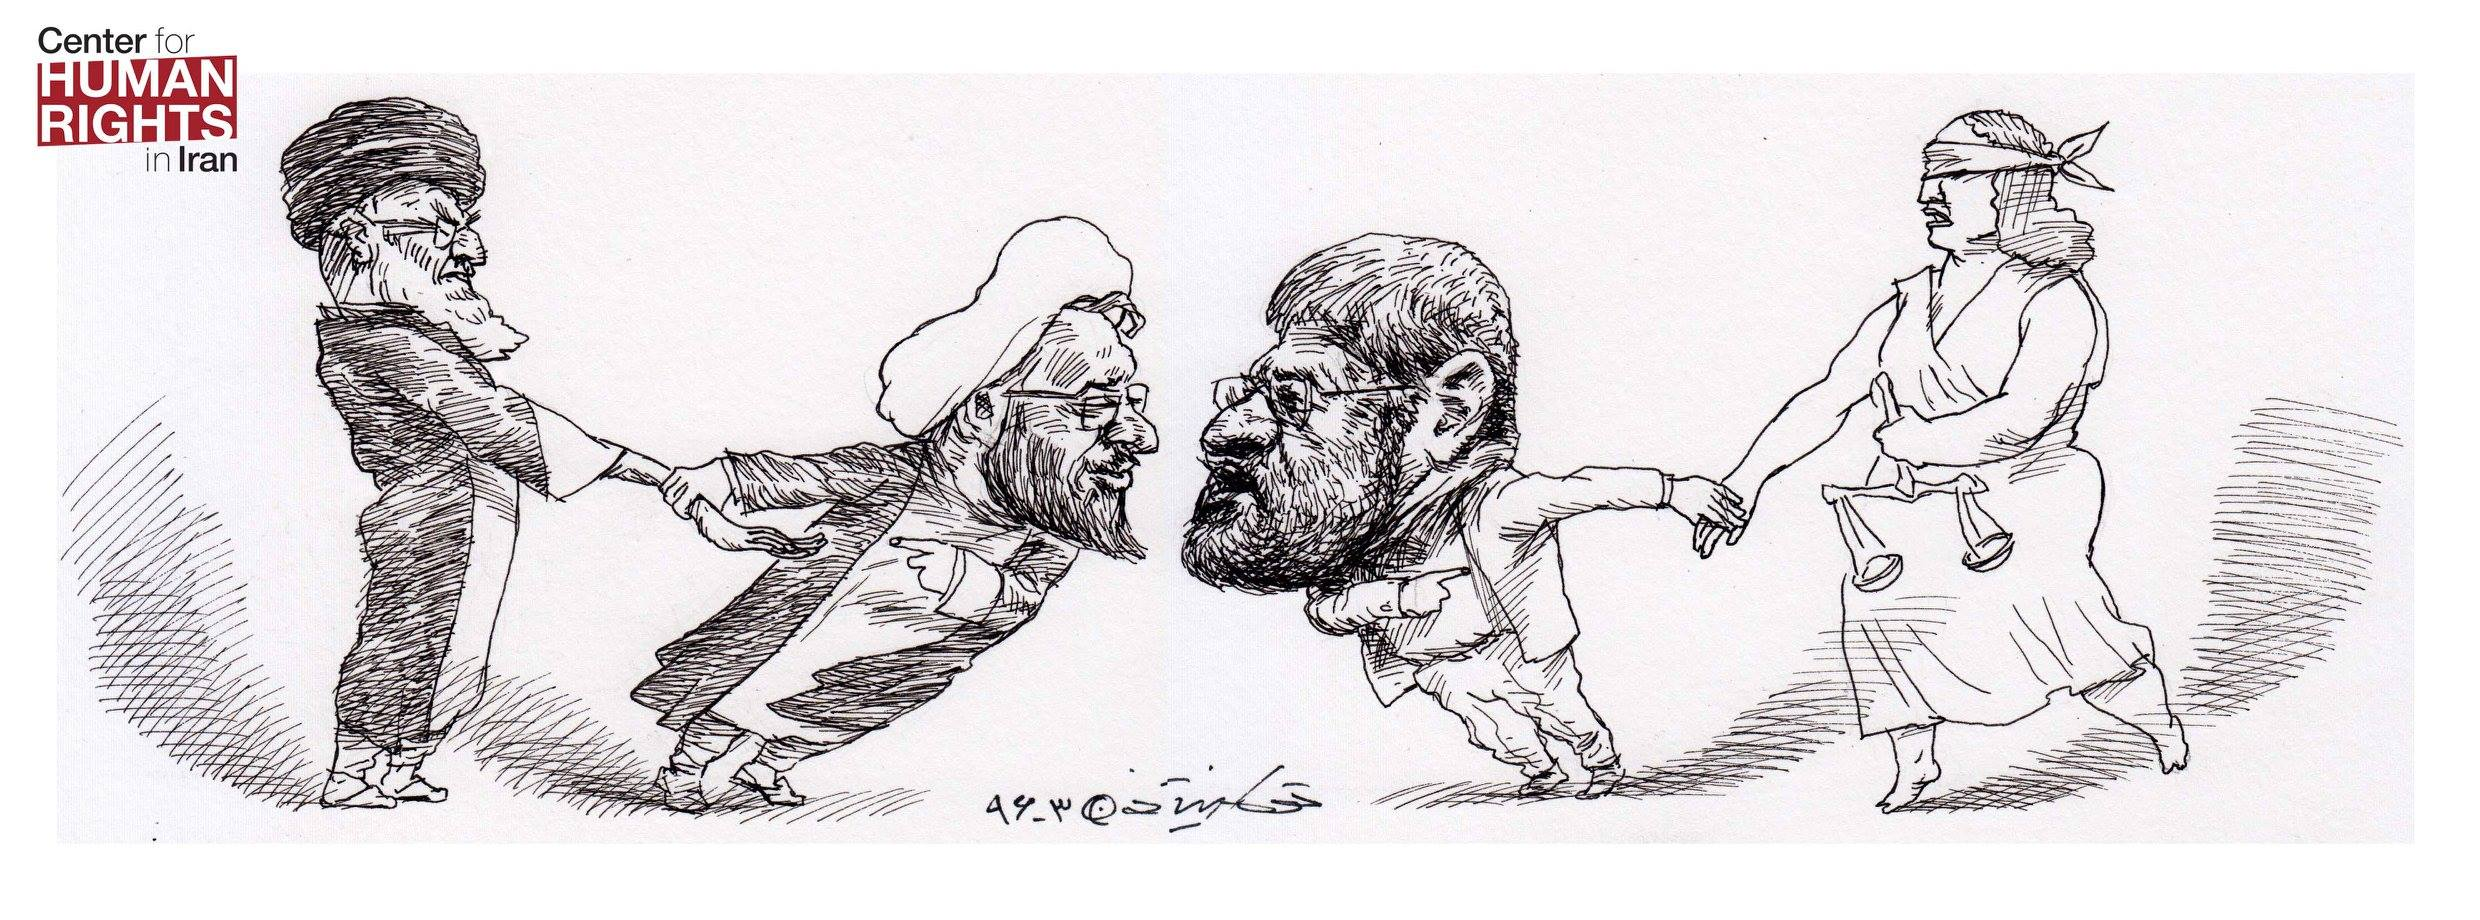 Cartoon 169: The Battle Over Justice in Iran